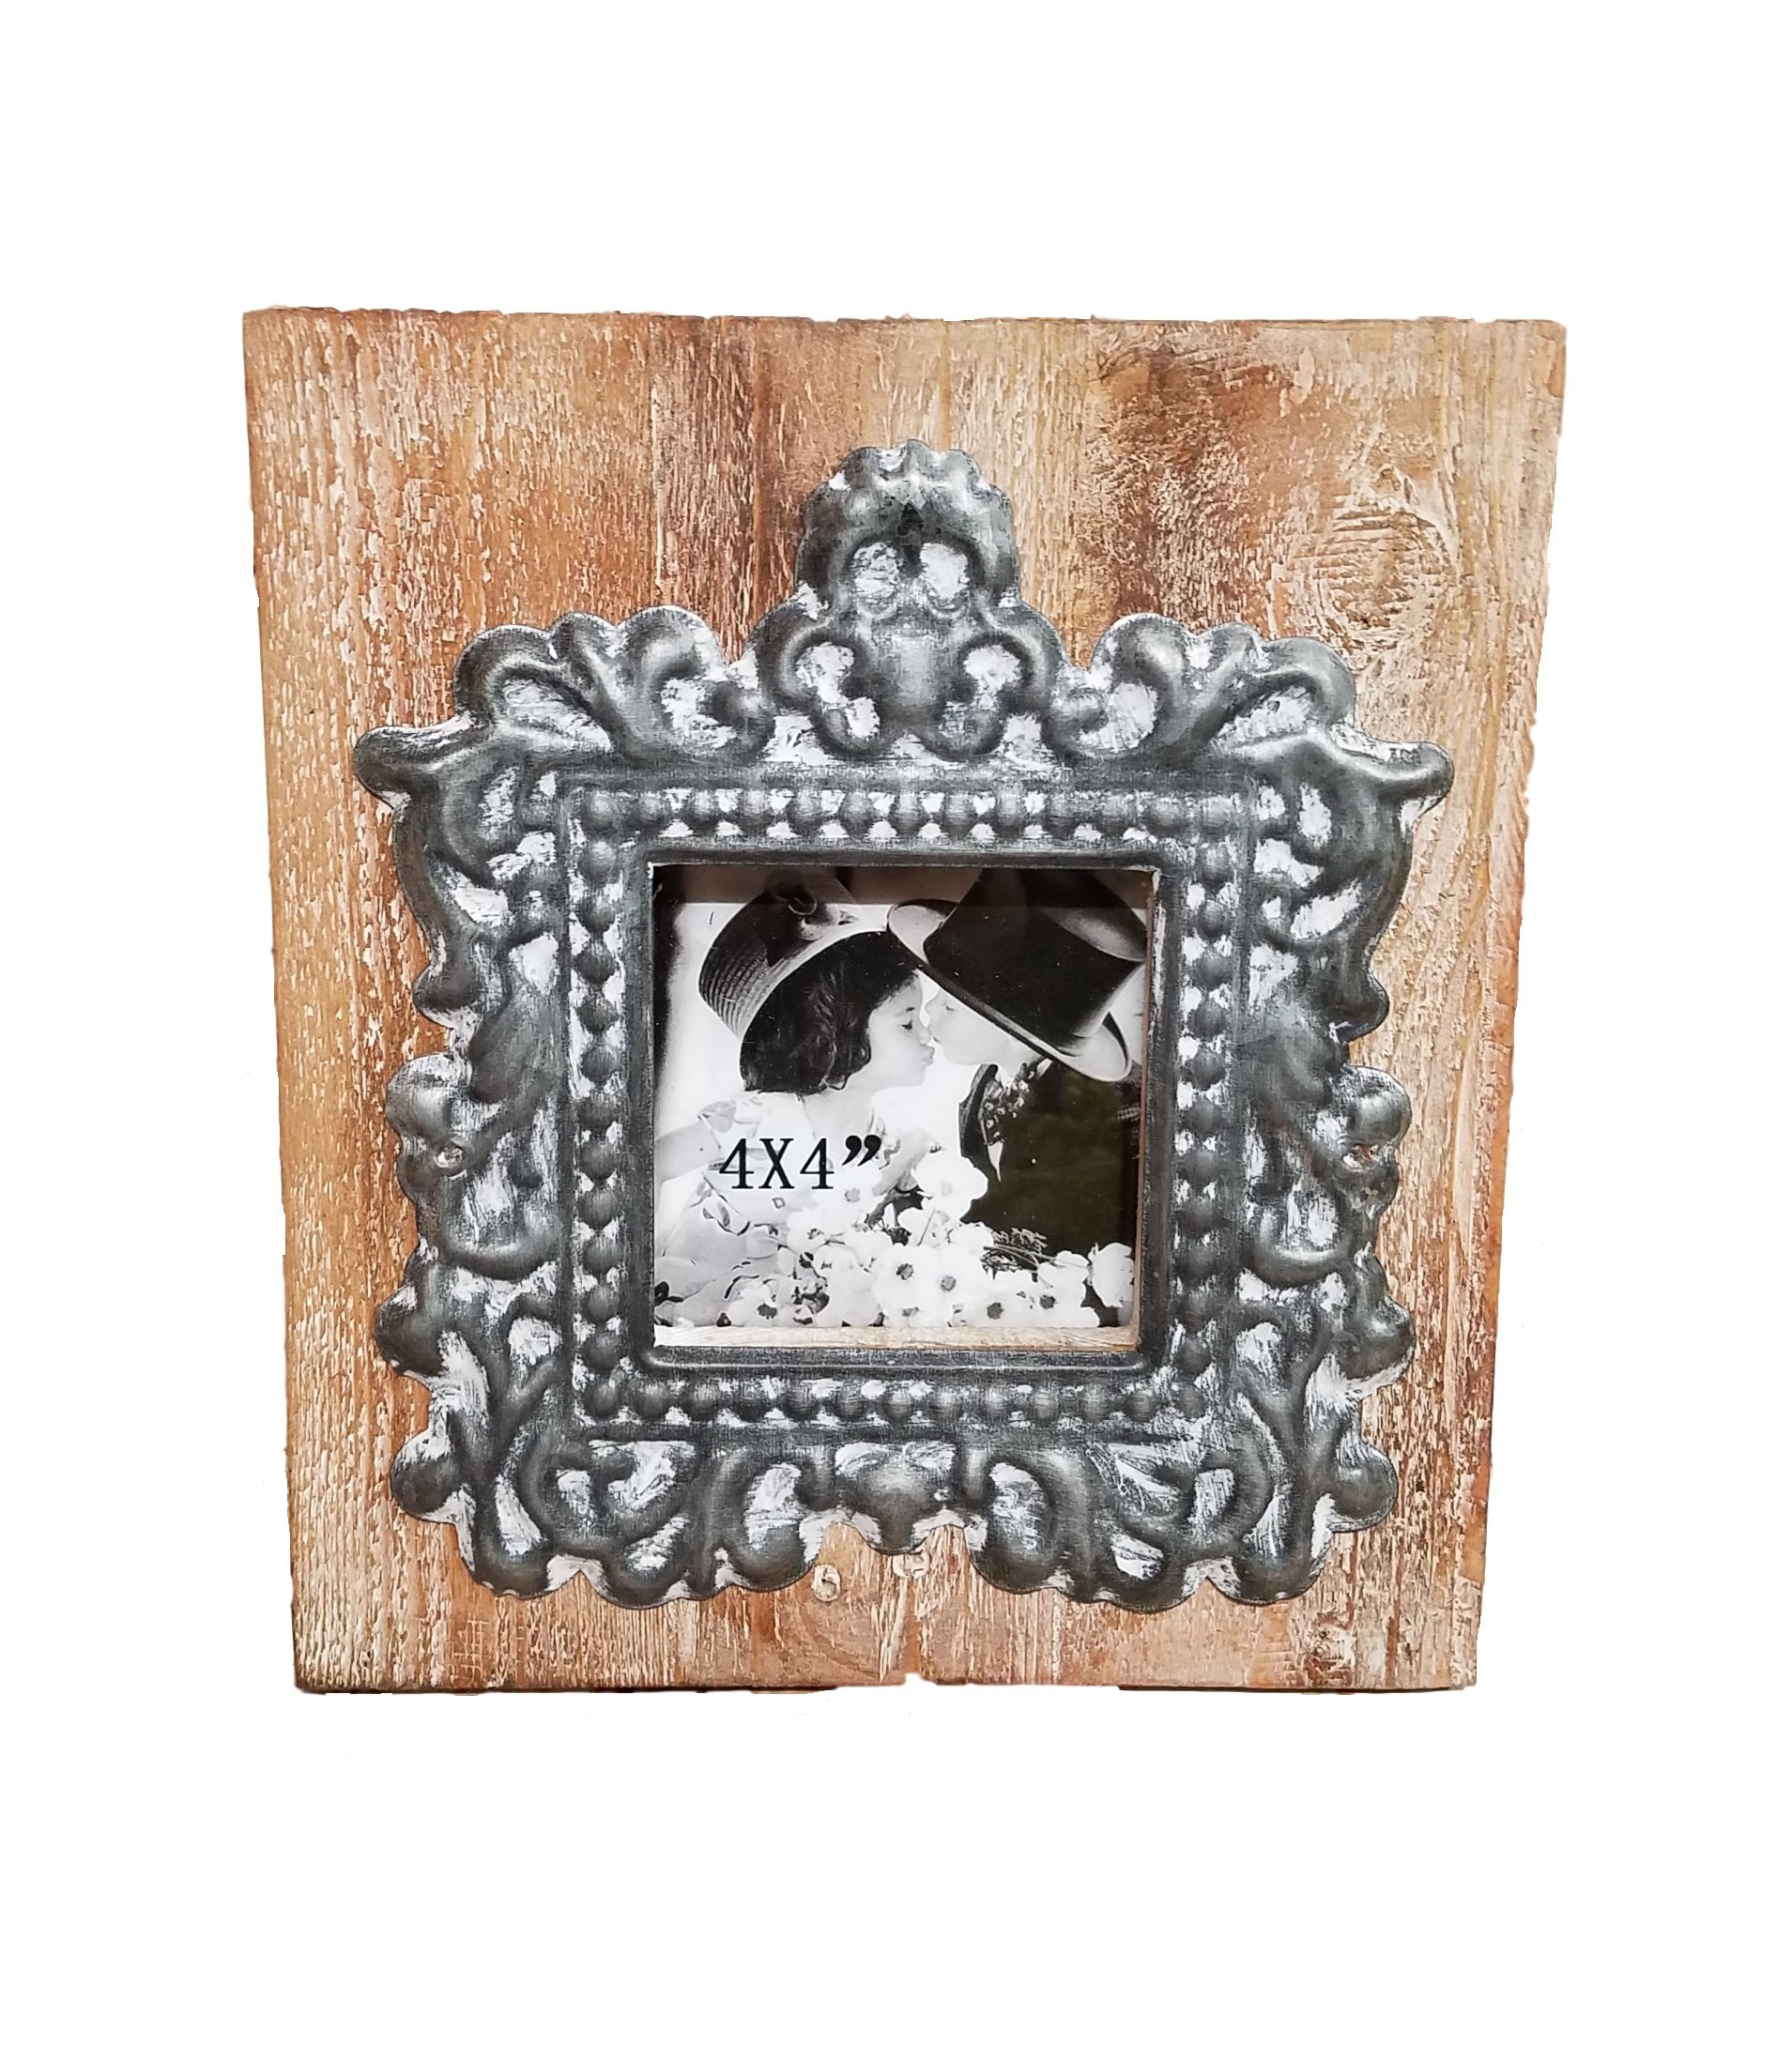 AT Vintage Wood and Metal Picture Frame Modern Farmhouse Decor